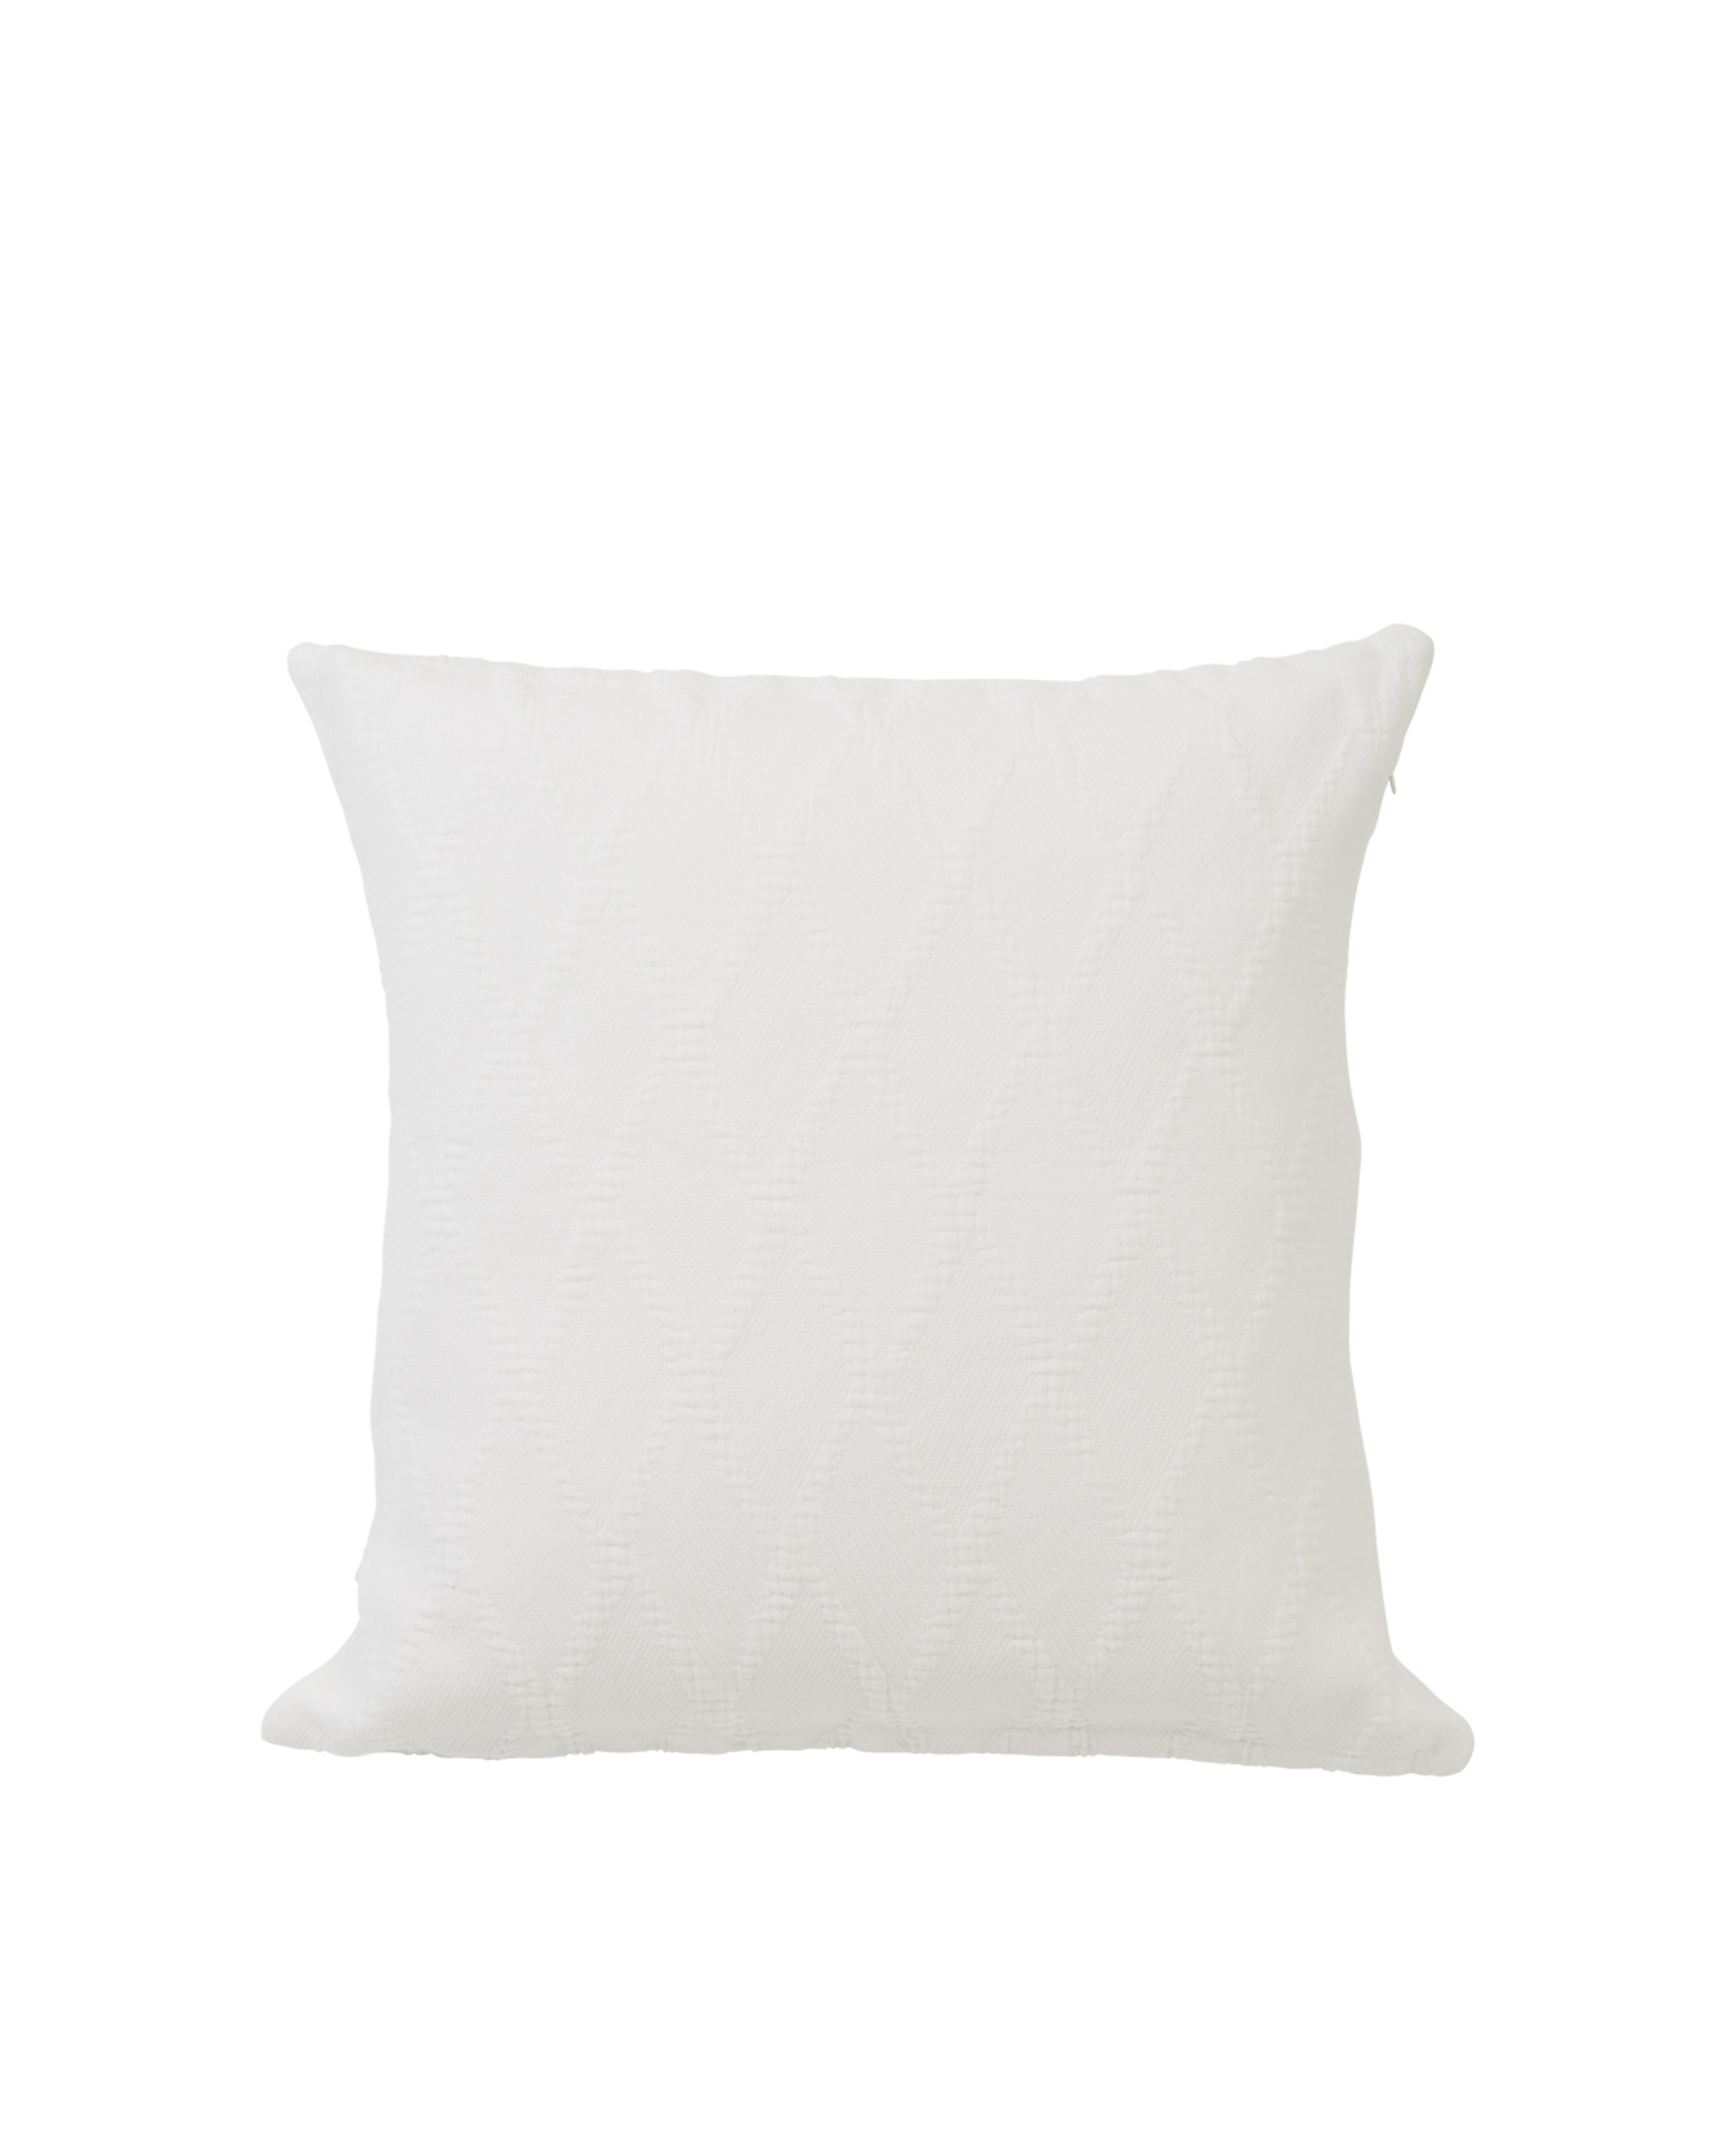 Jacquard Cotton Pillow Cover, White